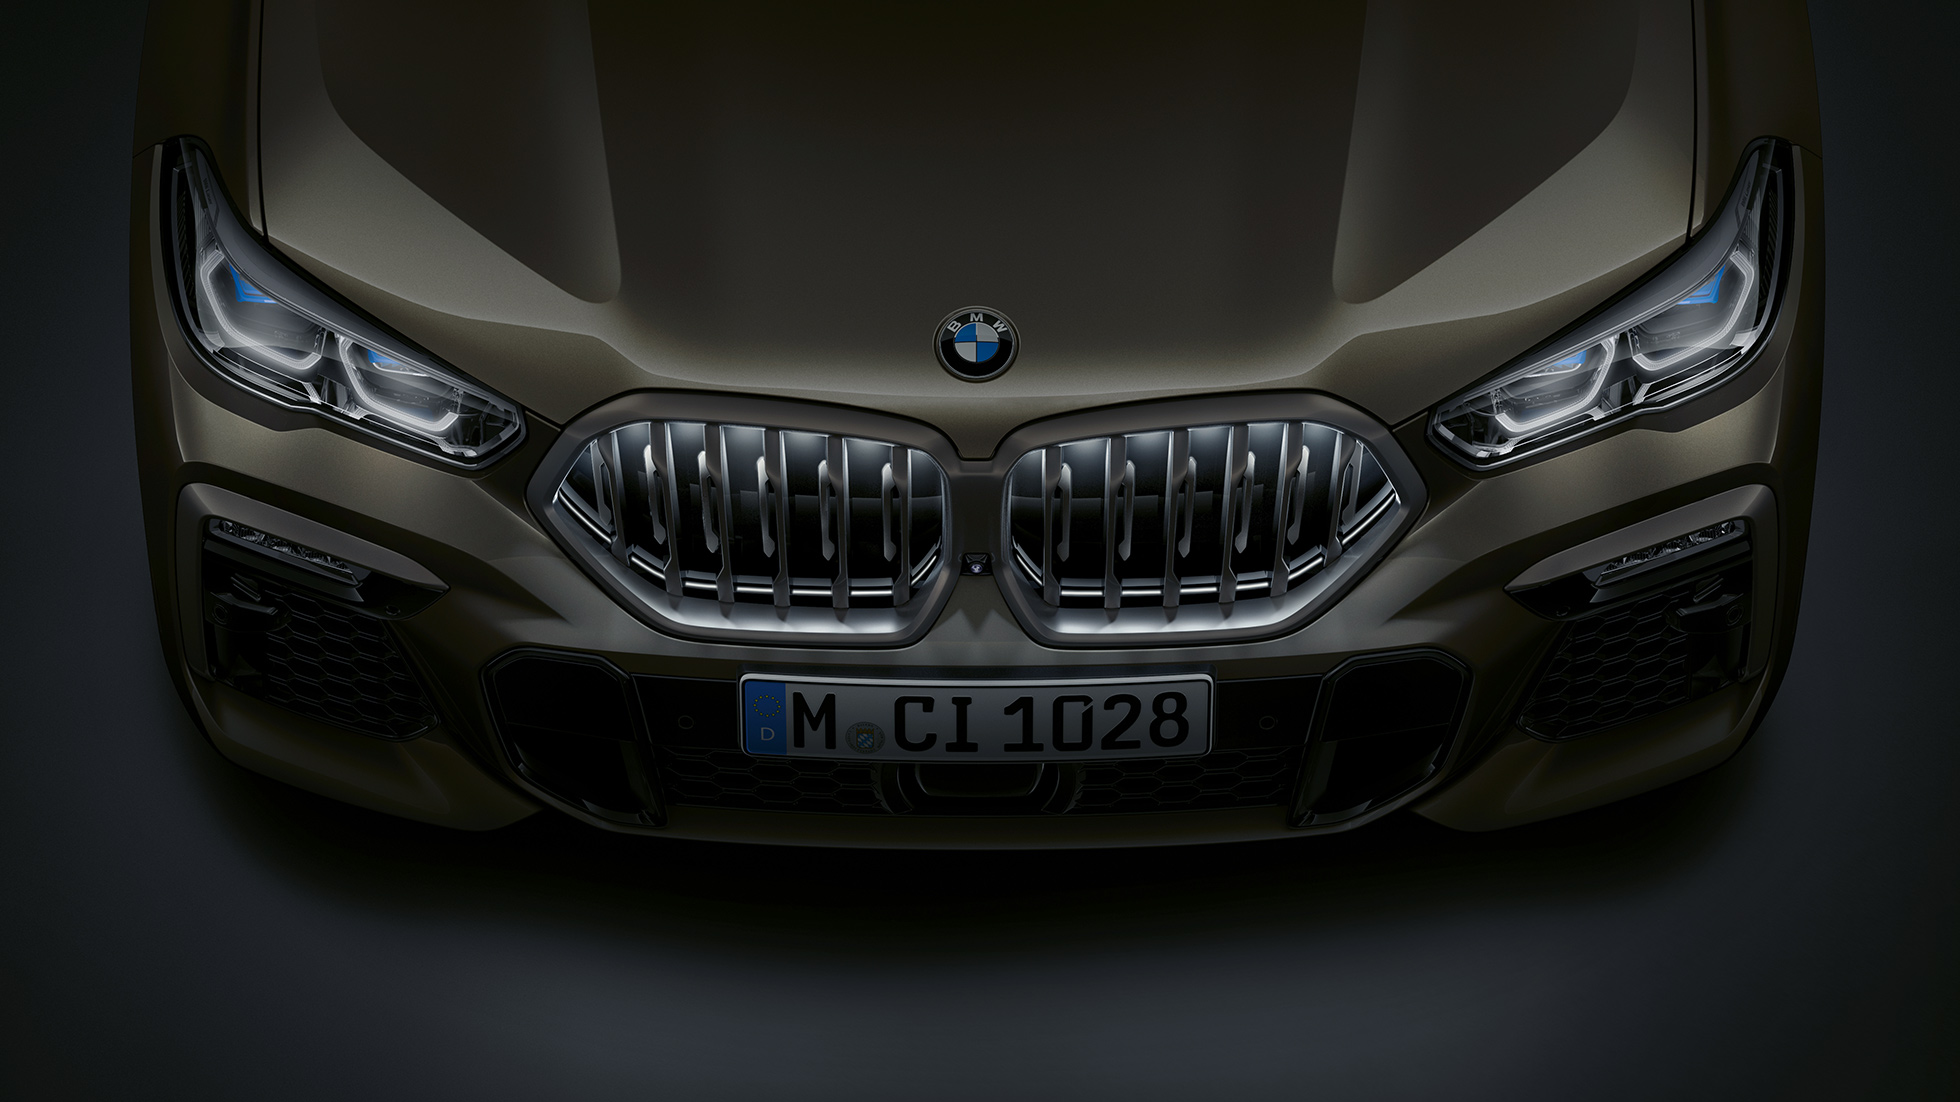 Close-up view of the BMW X6 front with BMW kidney grille 'Iconic Glow' from a bird's eye view.